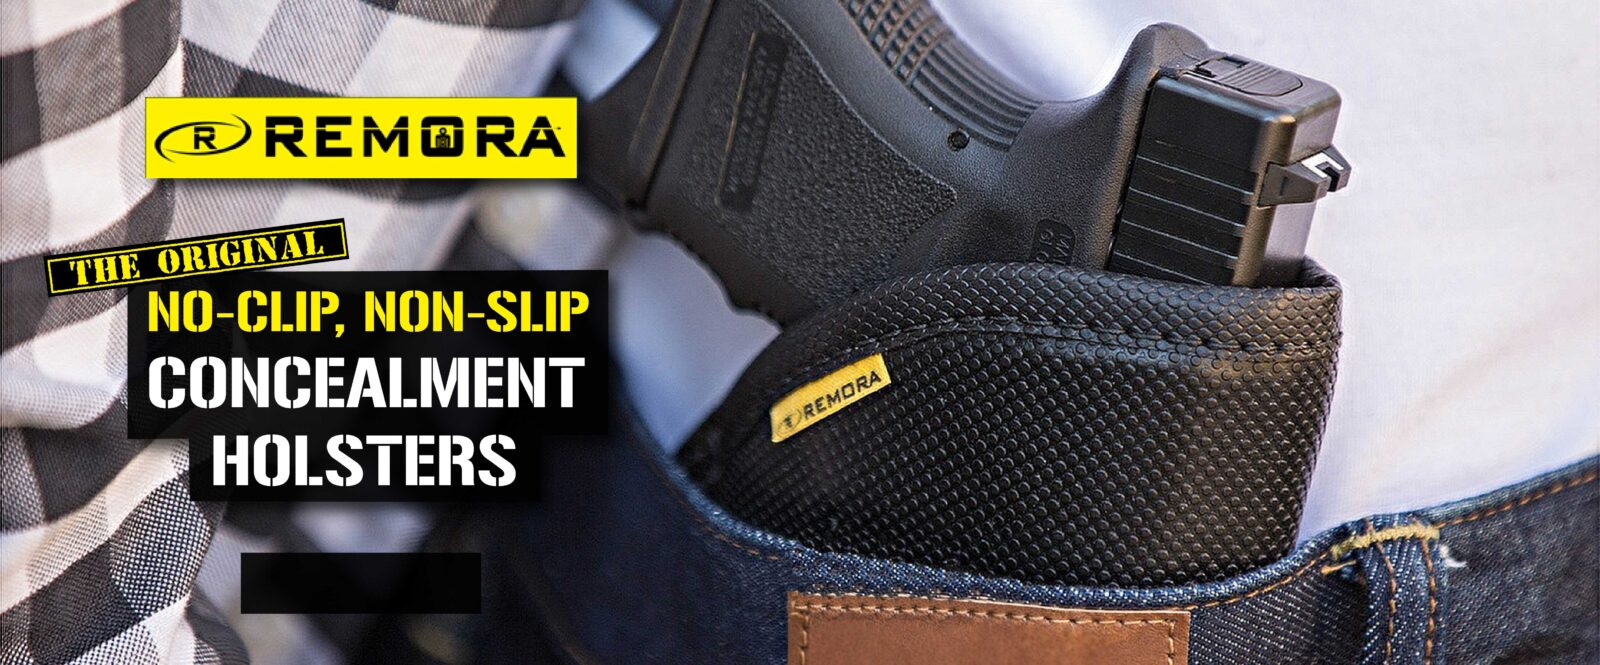 REMORA Concealed Carry Holsters   Concealment Holsters